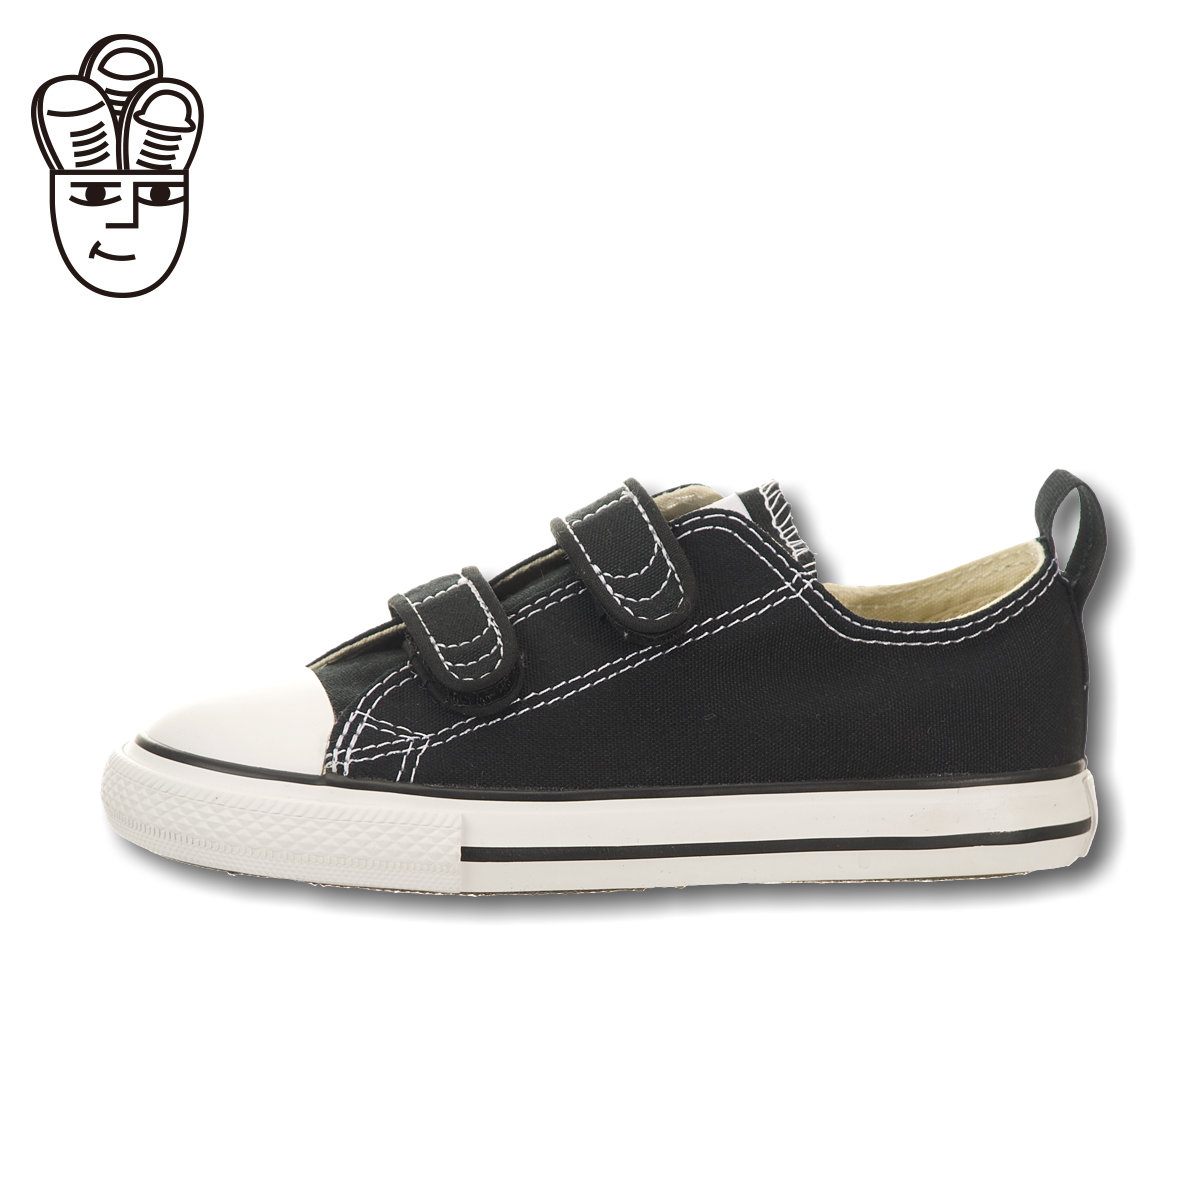 87fe429f3511 Get Quotations · Converse converse chuck taylor all star low shoes low to  help the baby in black and